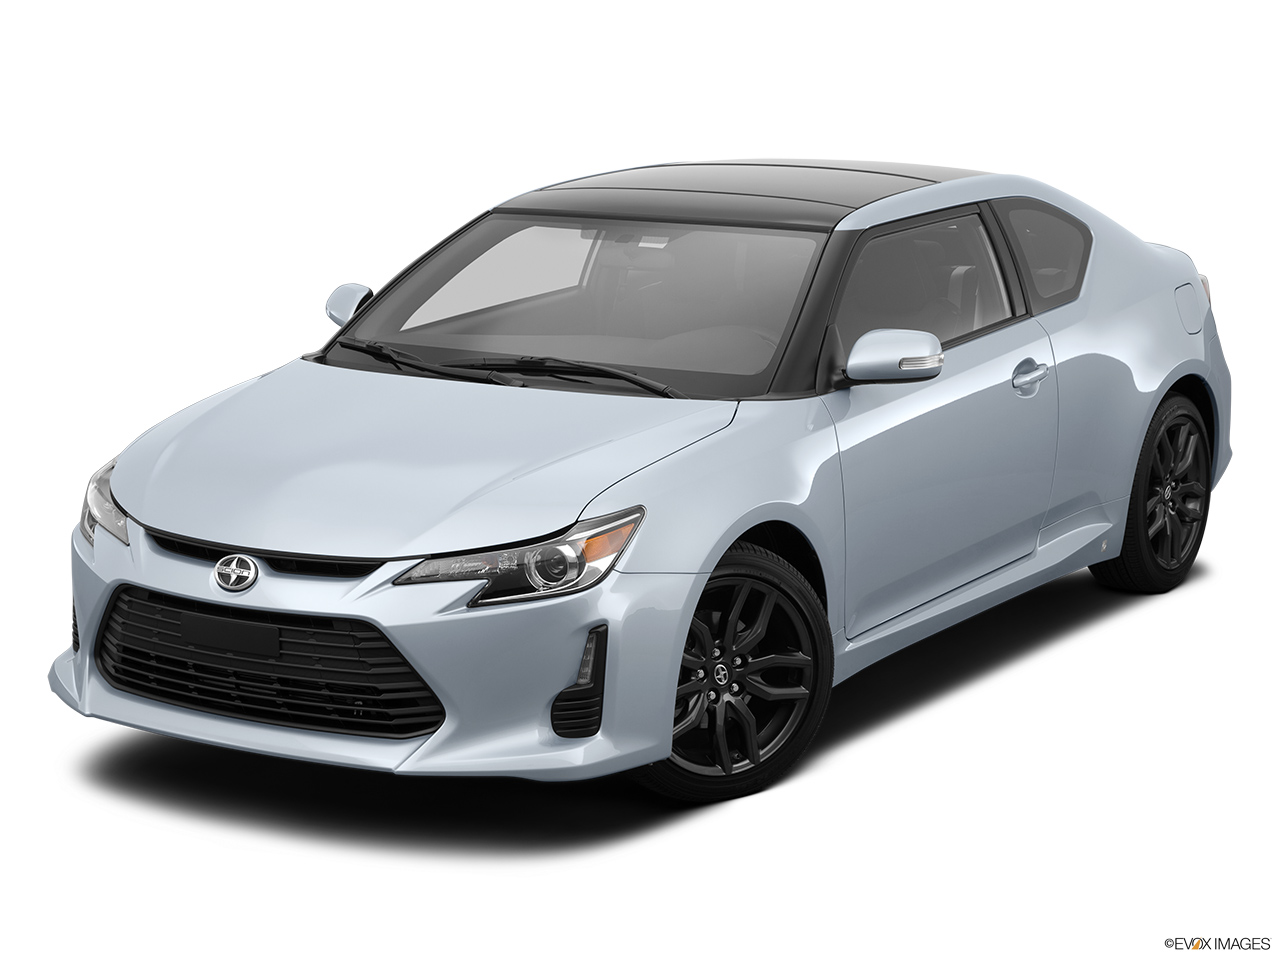 2014 scion tc 2dr hatchback automatic anniversary edition. Black Bedroom Furniture Sets. Home Design Ideas